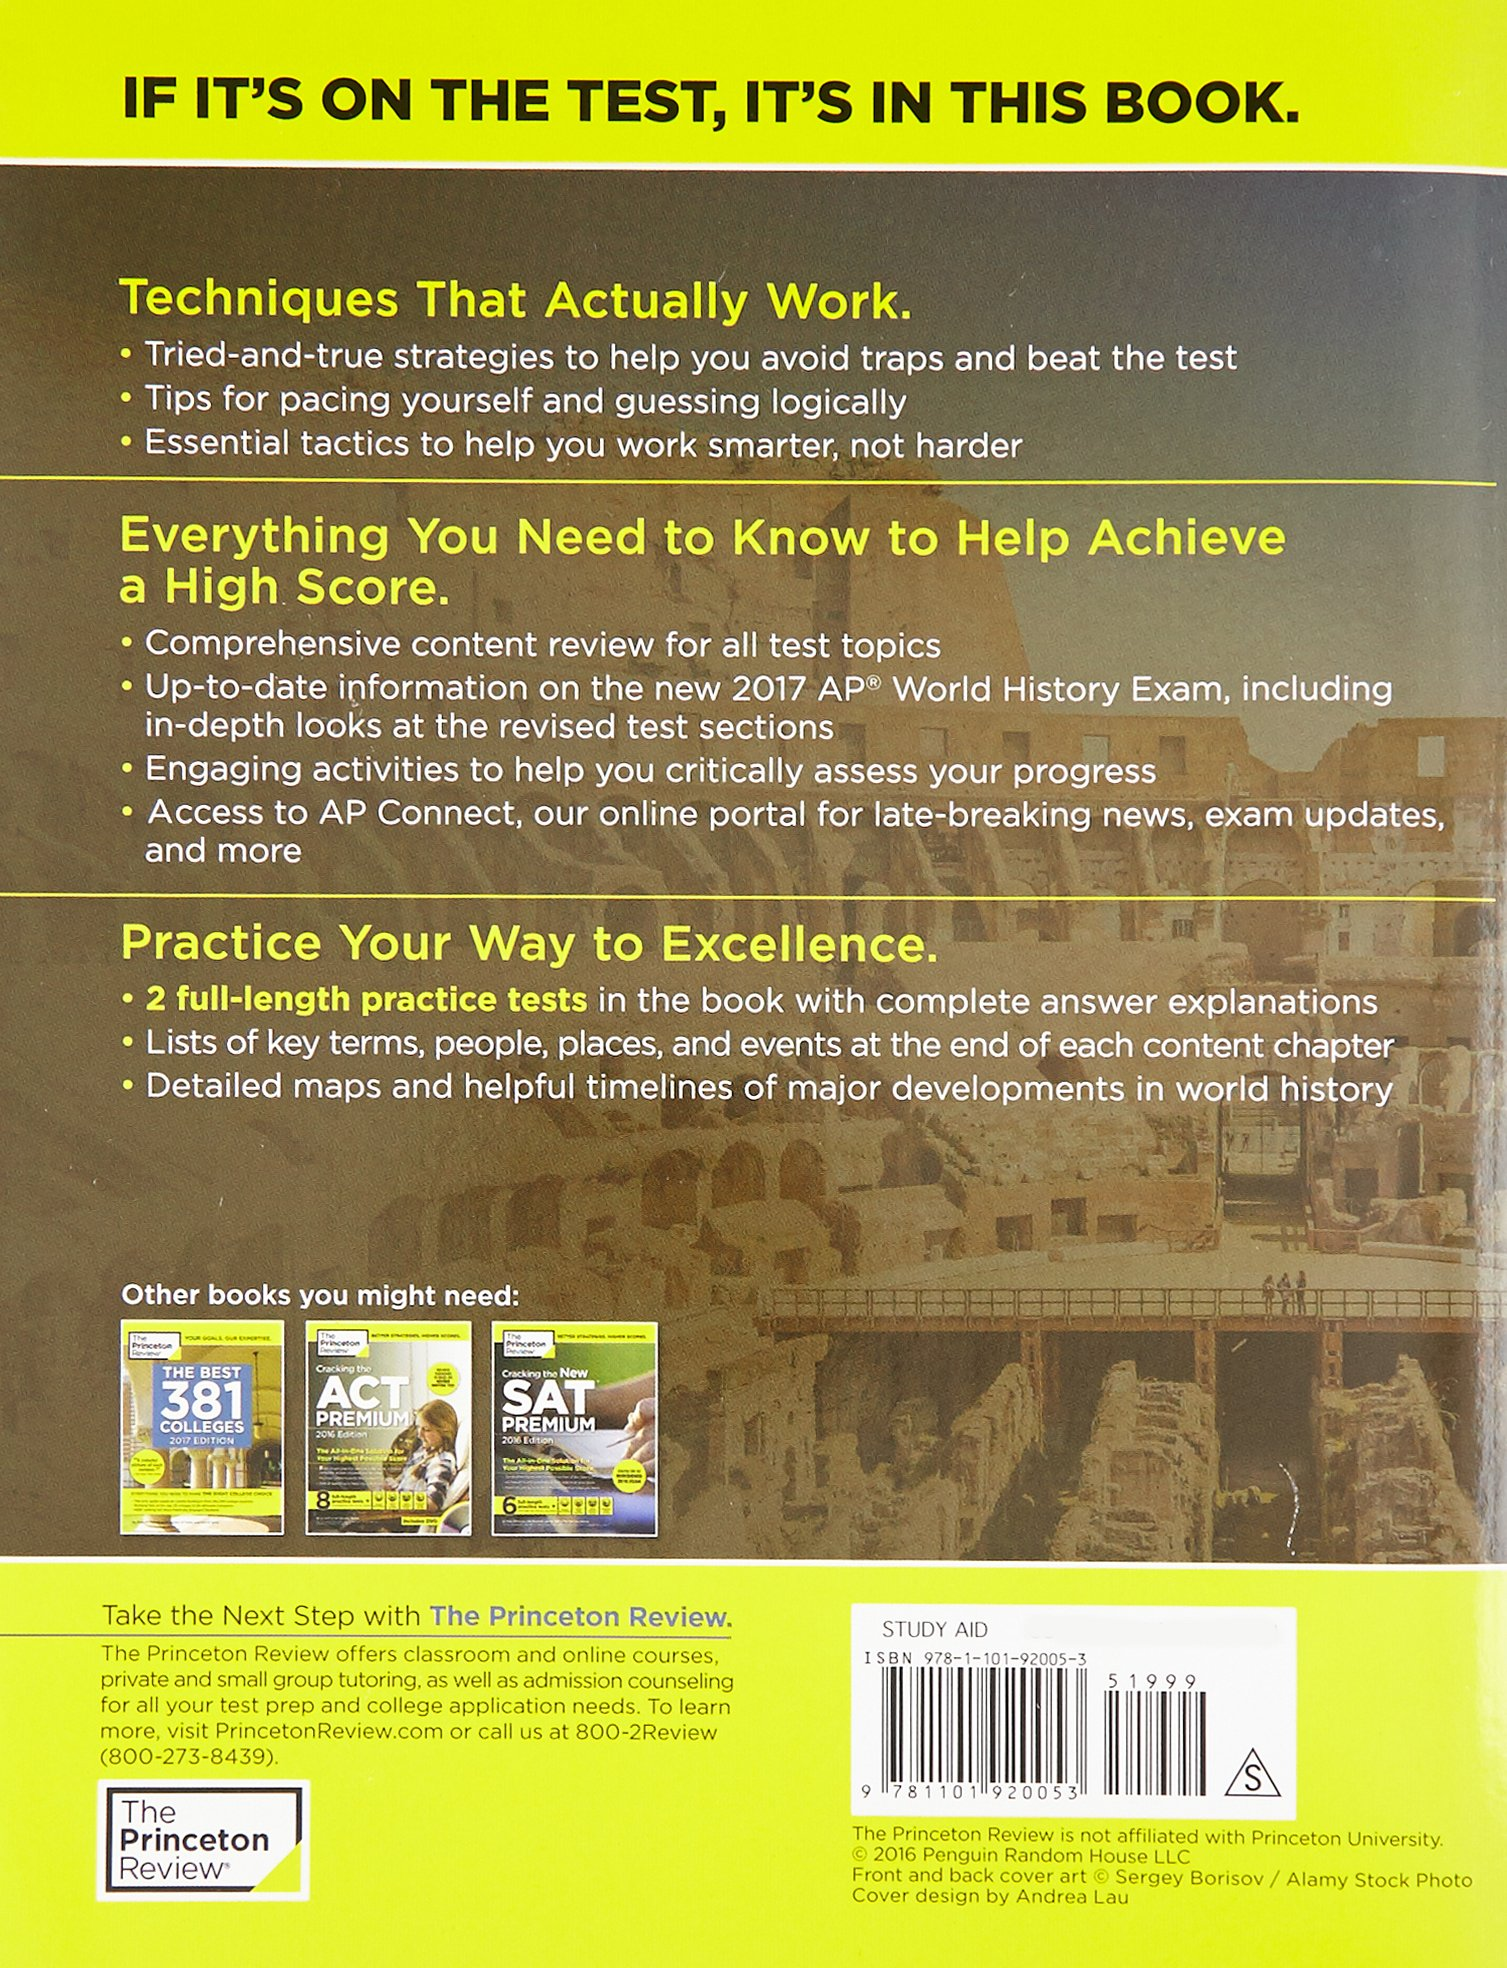 Cracking the ap world history exam 2017 edition proven techniques cracking the ap world history exam 2017 edition proven techniques to help you score a 5 princeton review 9781101920053 books amazon gumiabroncs Images